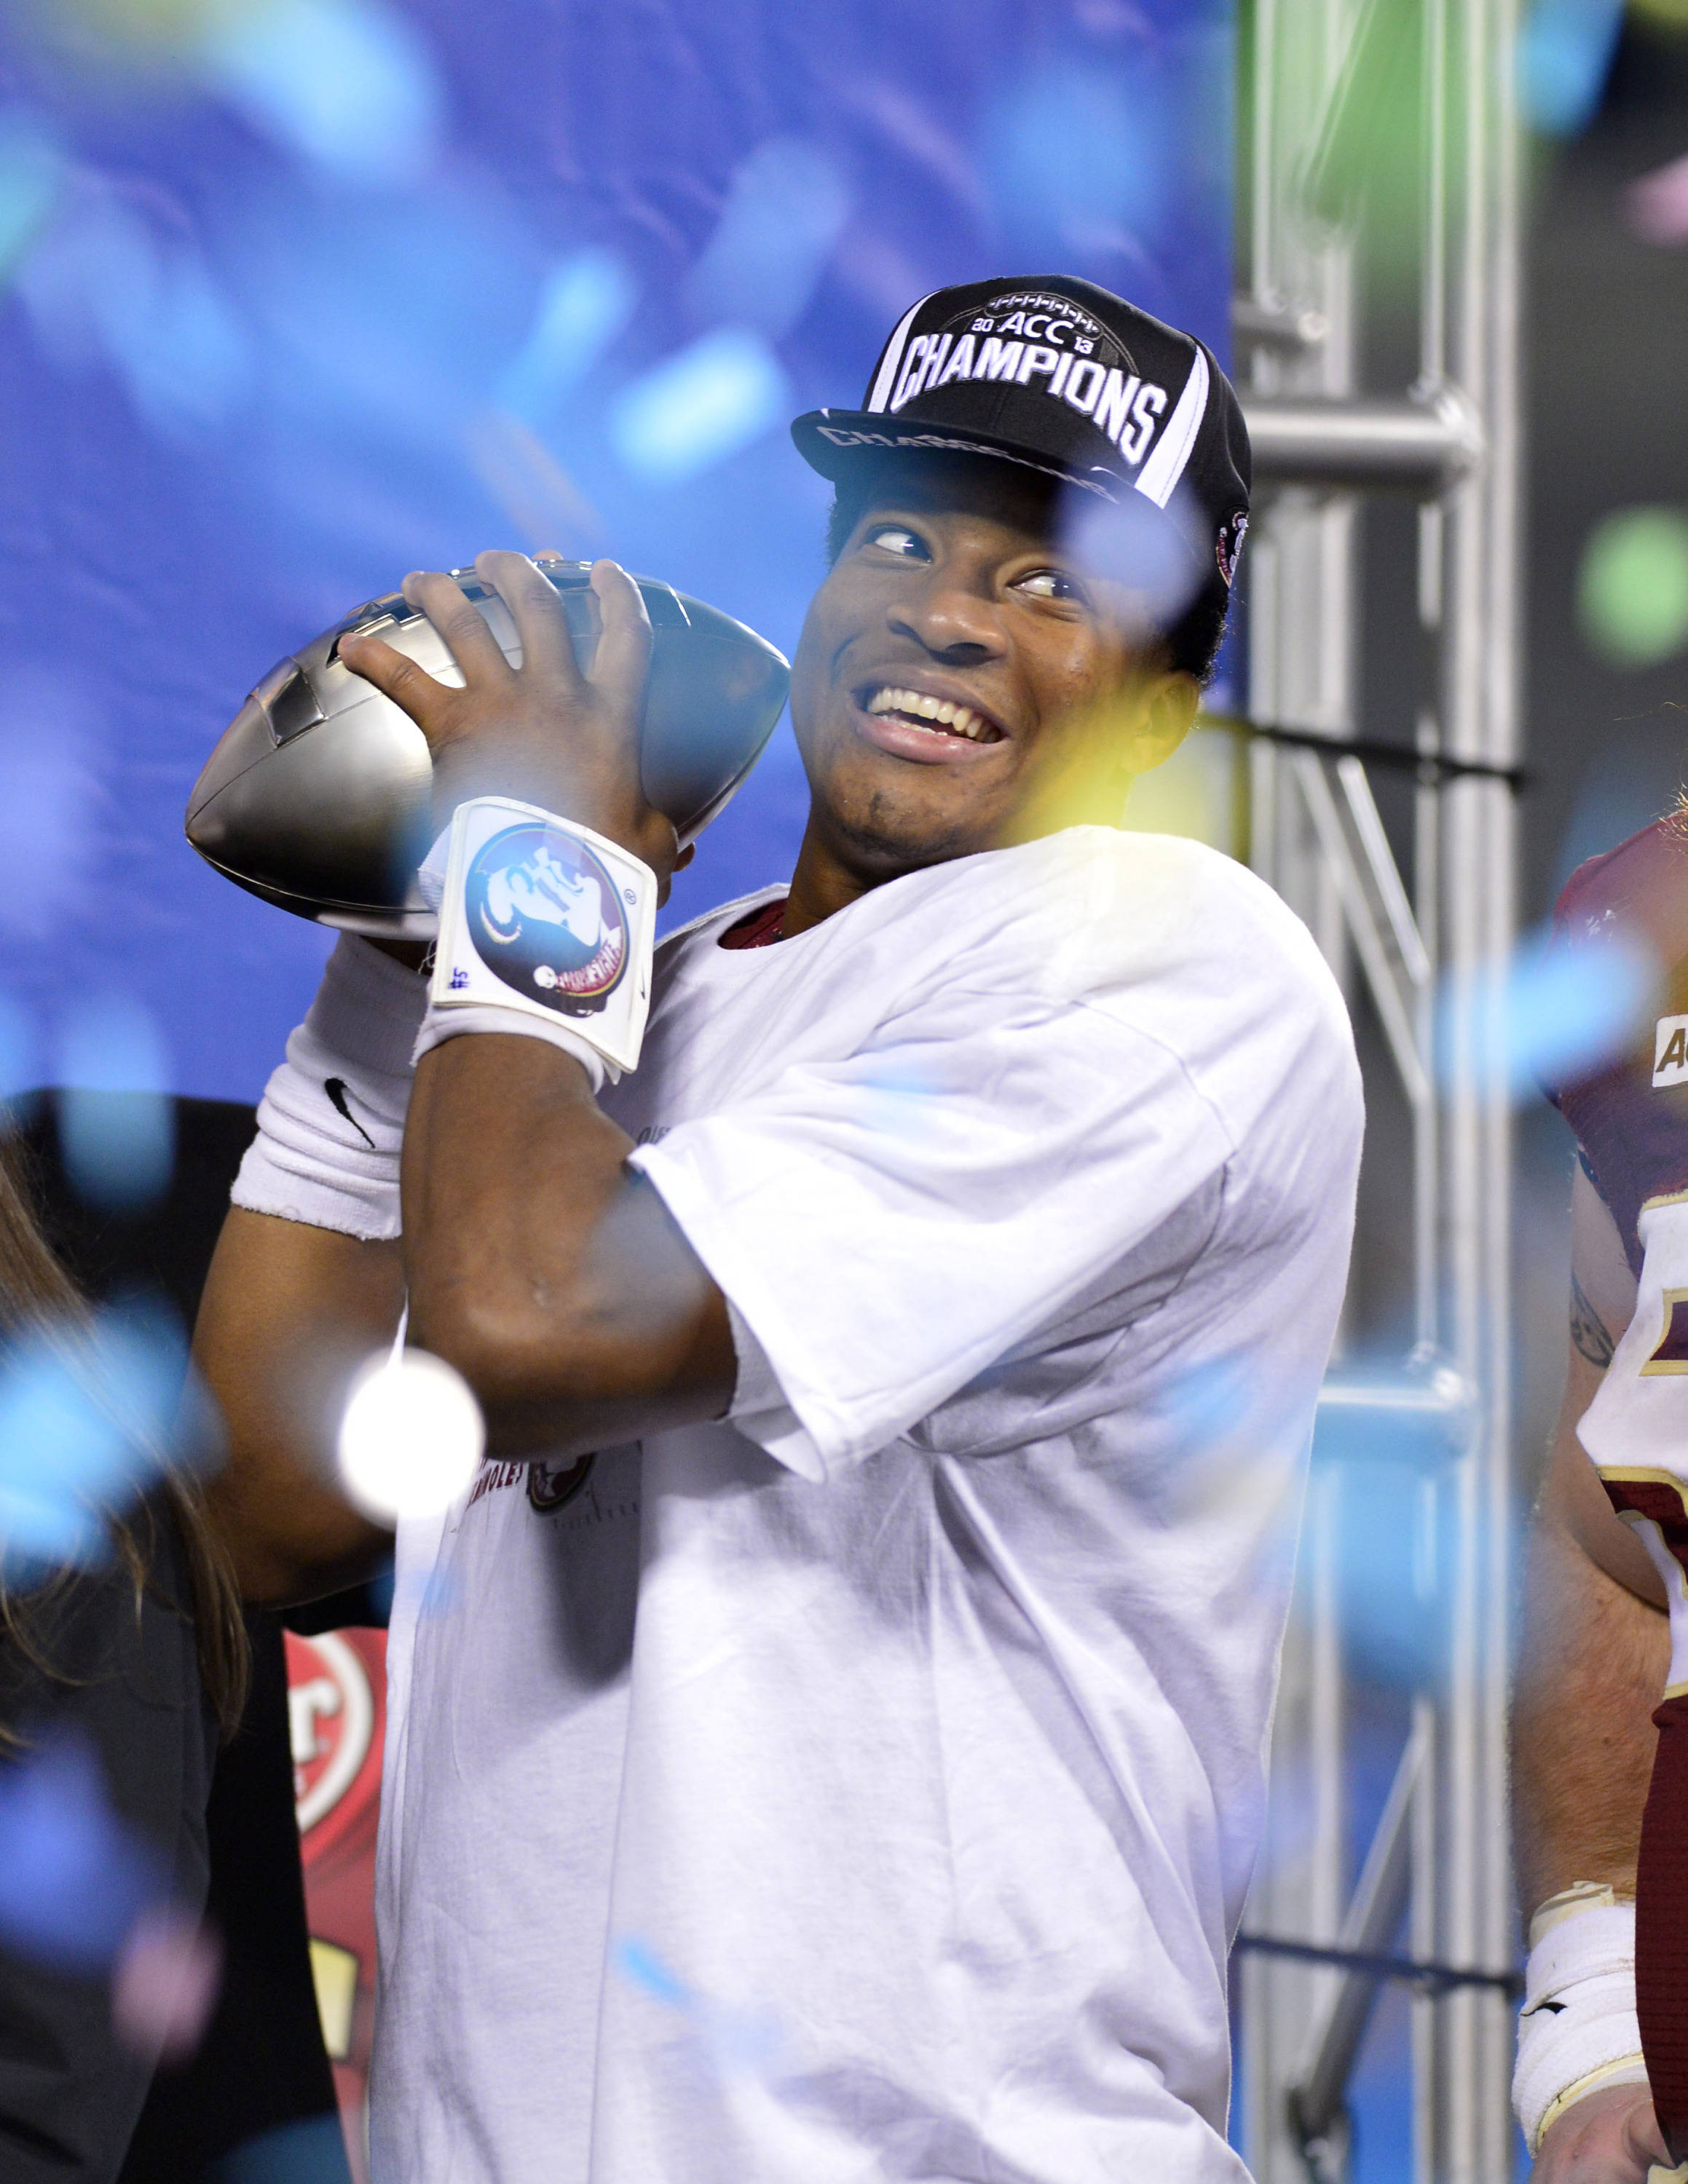 Florida State Seminoles quarterback Jameis Winston (5) pretends to pass the ACC Championship trophy. The Seminoles defeated the Blue Devils 45-7 at Bank of America Stadium. Credit: Bob Donnan-USA TODAY Sports